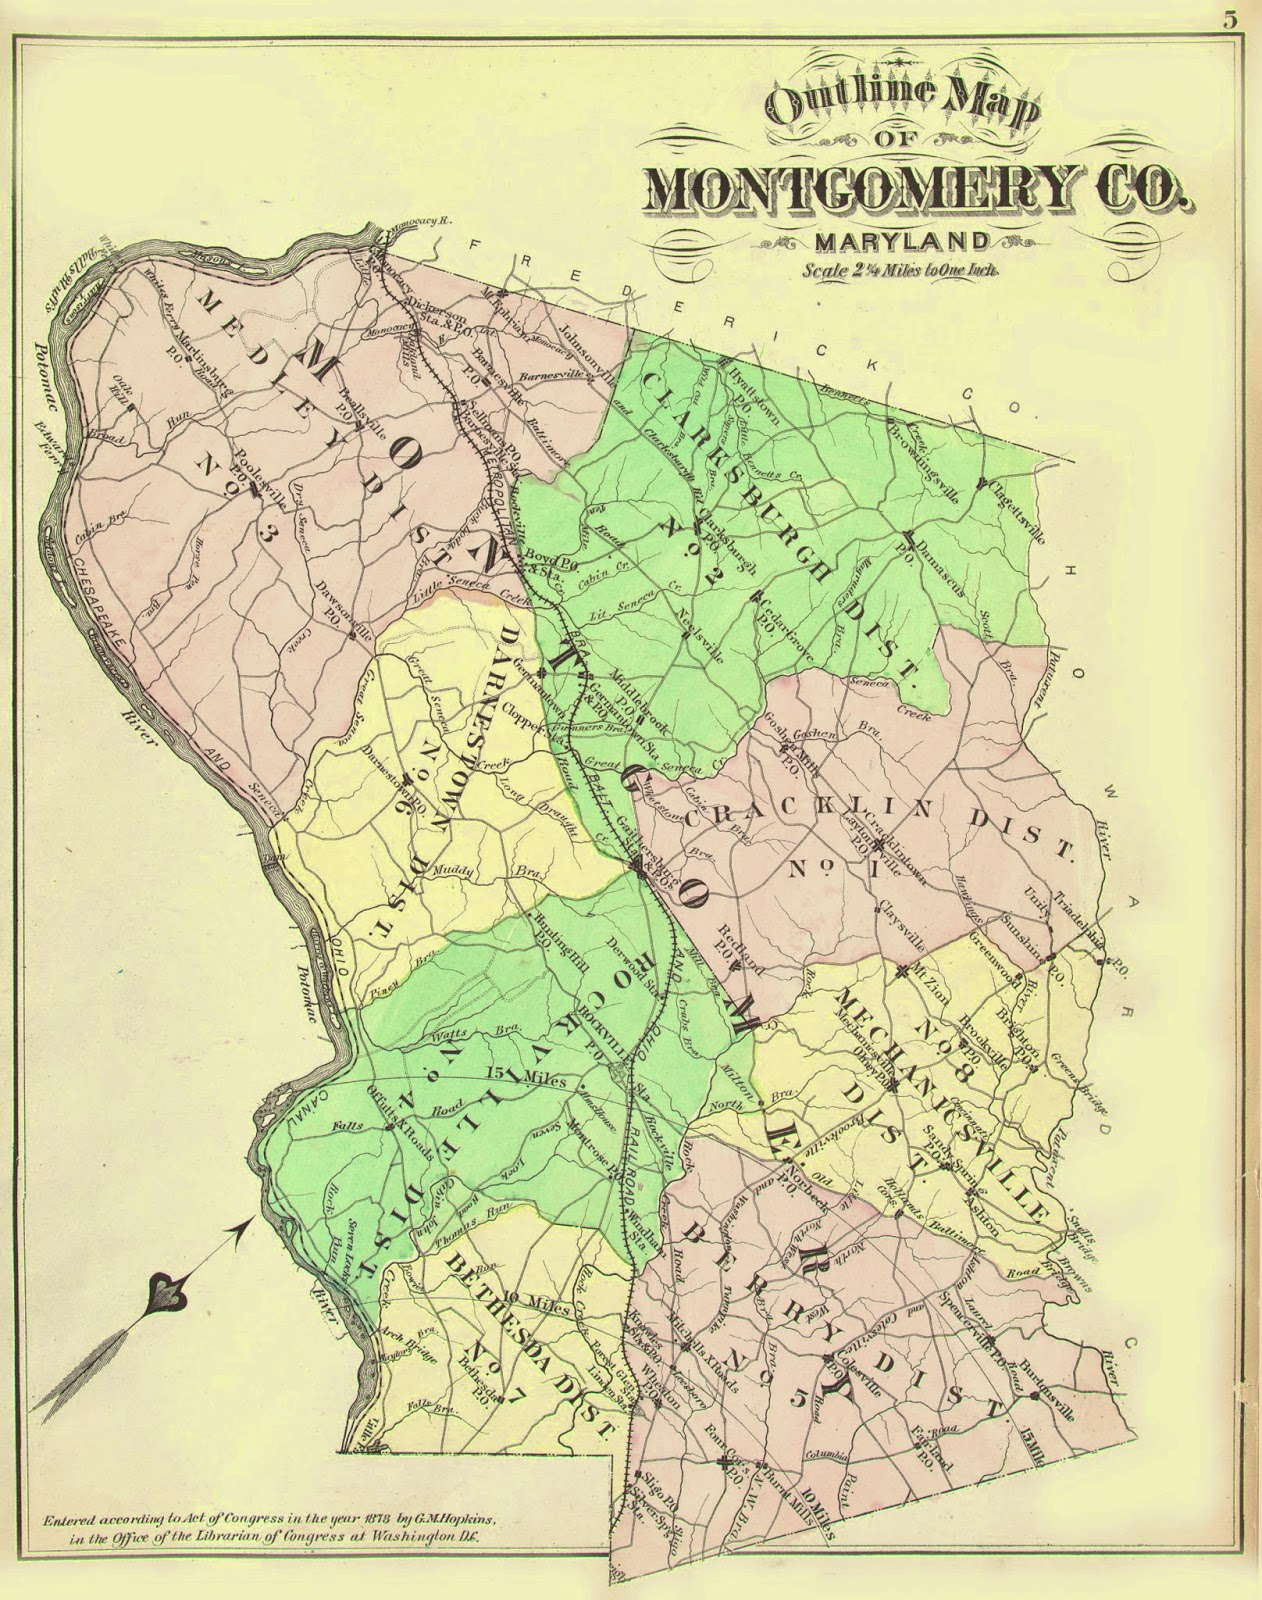 Maryland Maps and Photographs: 1878 Map of Montgomery County on